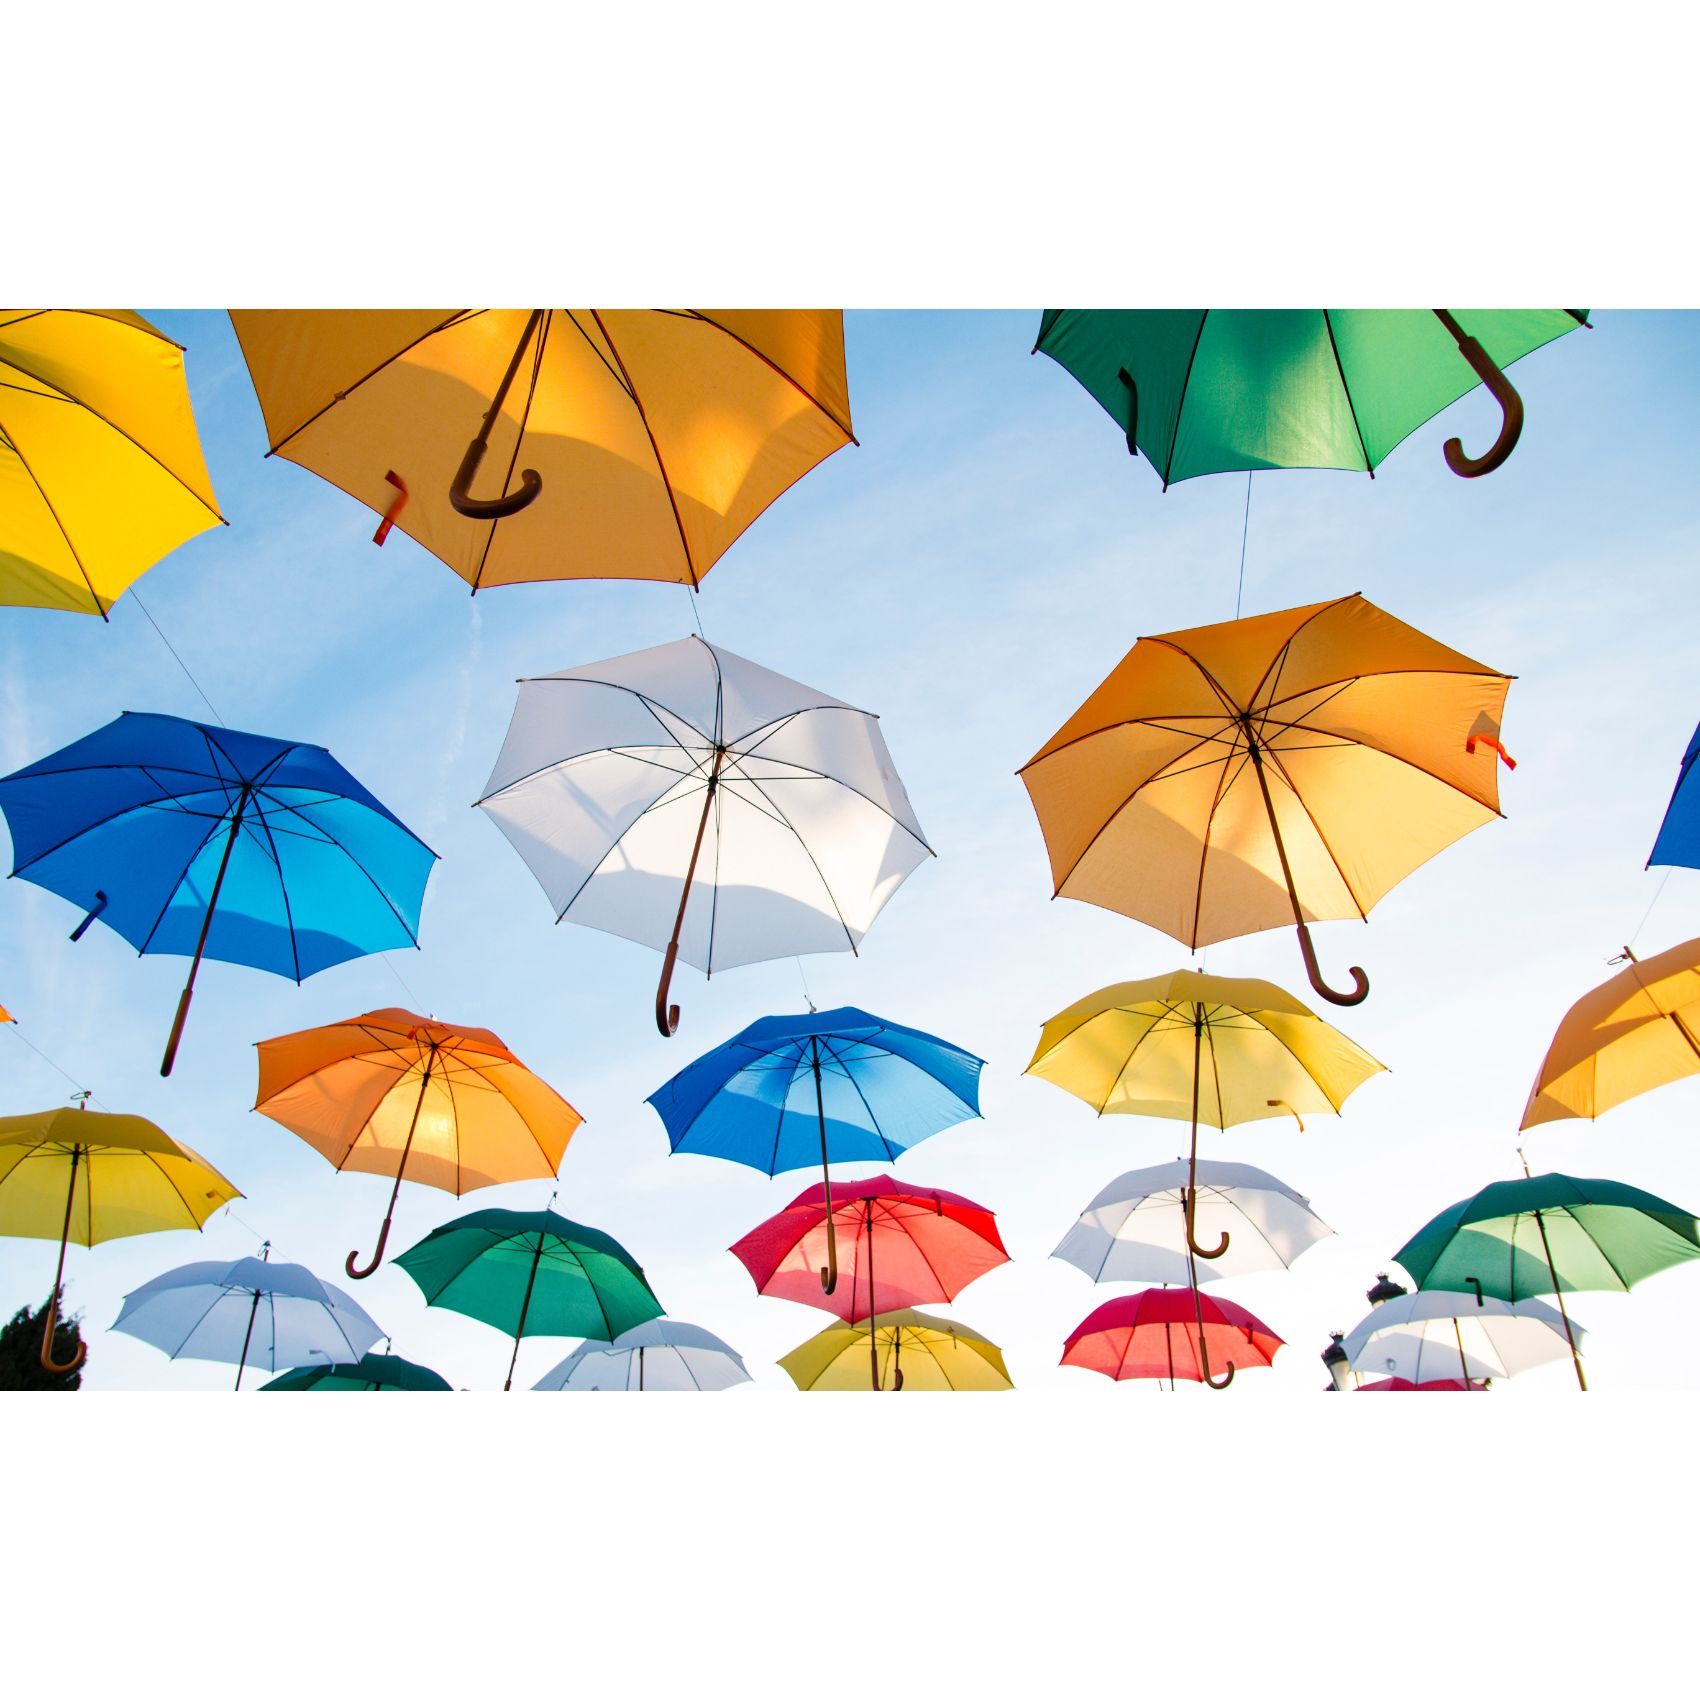 Discovering MErcy_Recommended Videos_Umbrellas in air